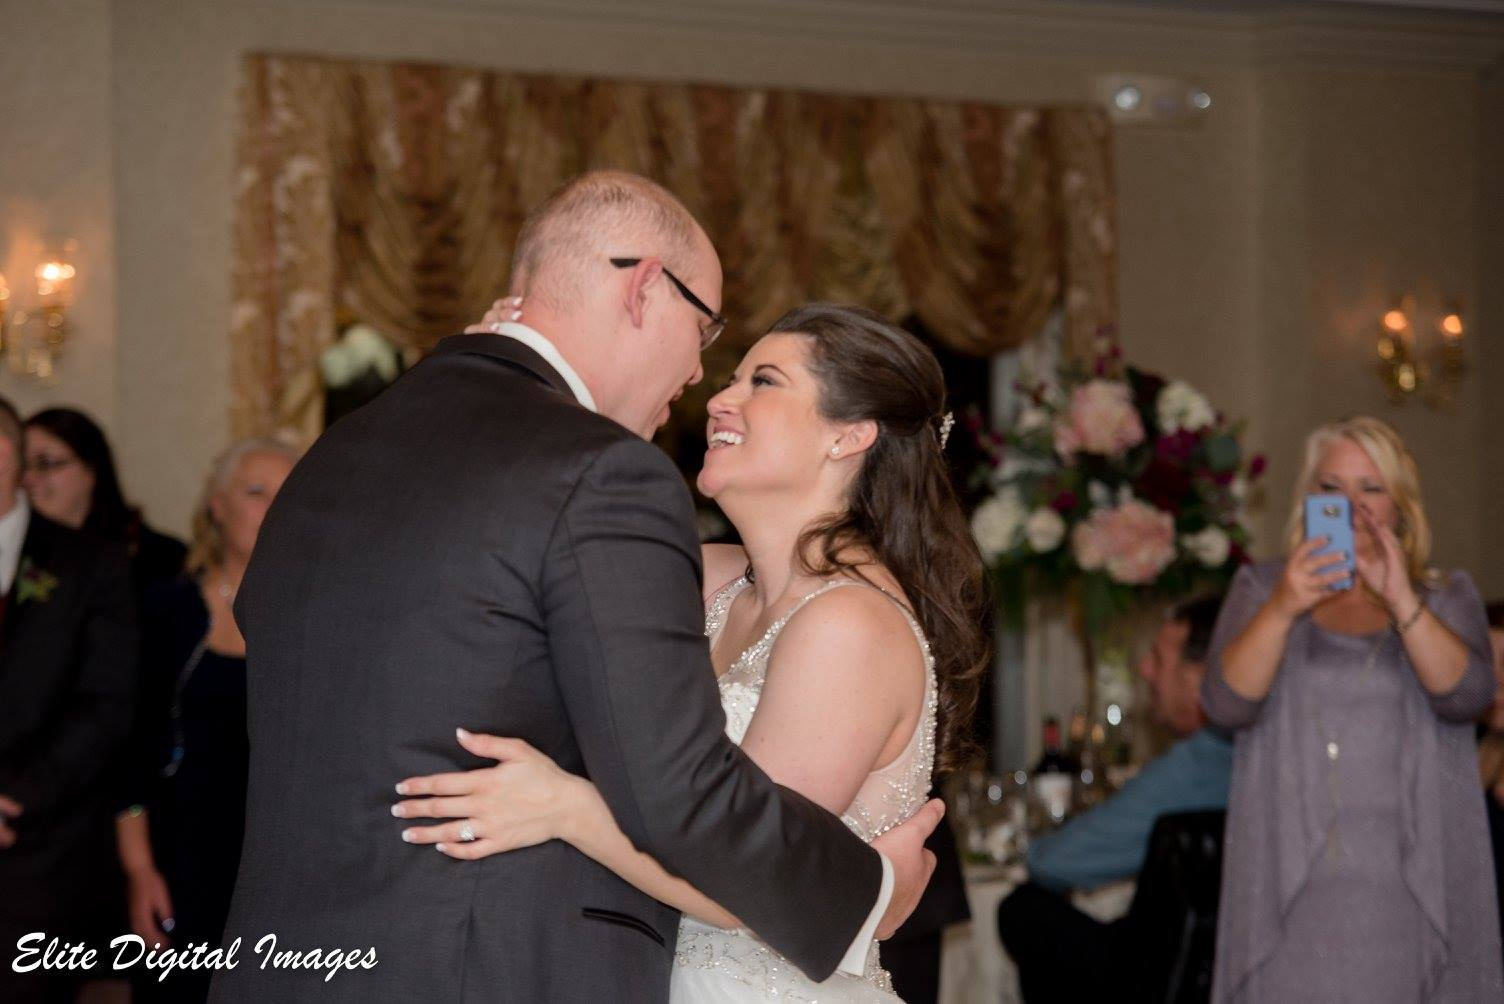 Elite Entertainment_ NJWedding_ EliteDigitalImages_EnglishManor_NicoleAndCraig6